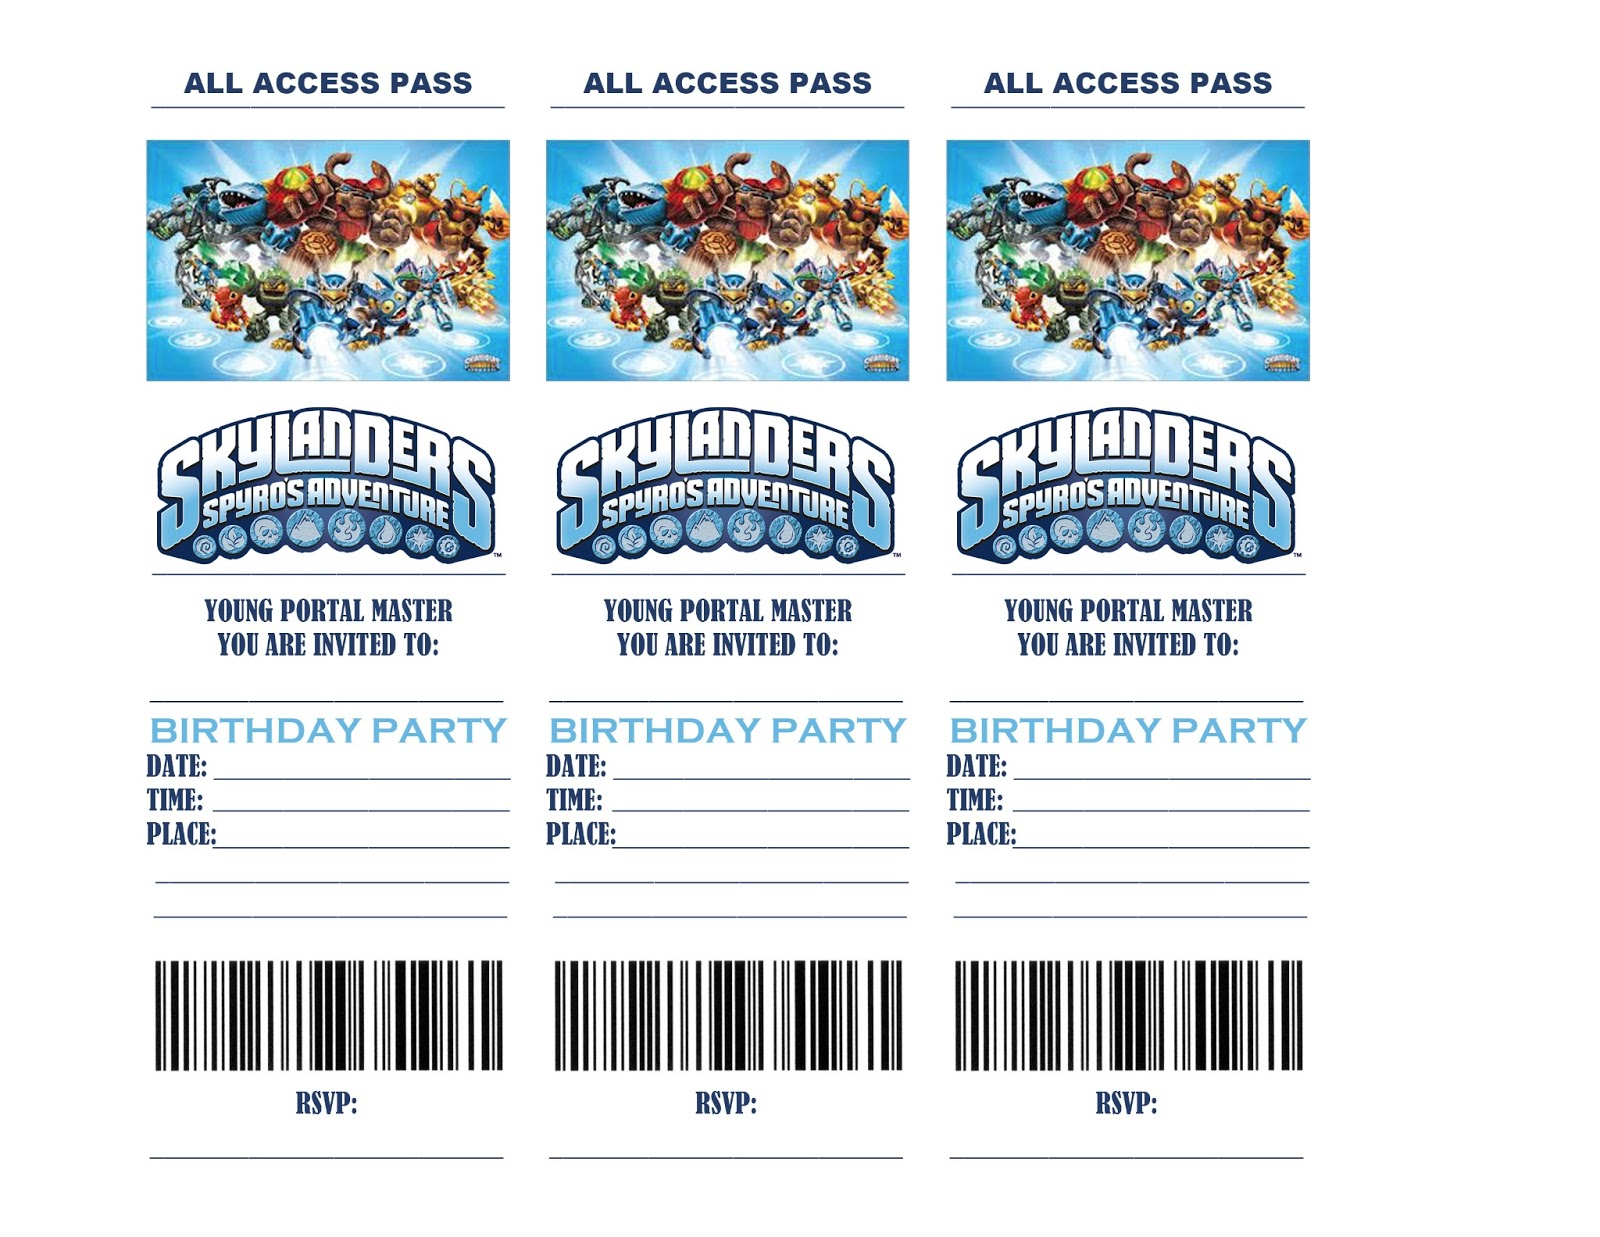 skylander birthday card template ; skylanders-birthday-party-invitations-printable-b72b58f0ab55dc331bc3e8c798faf95c